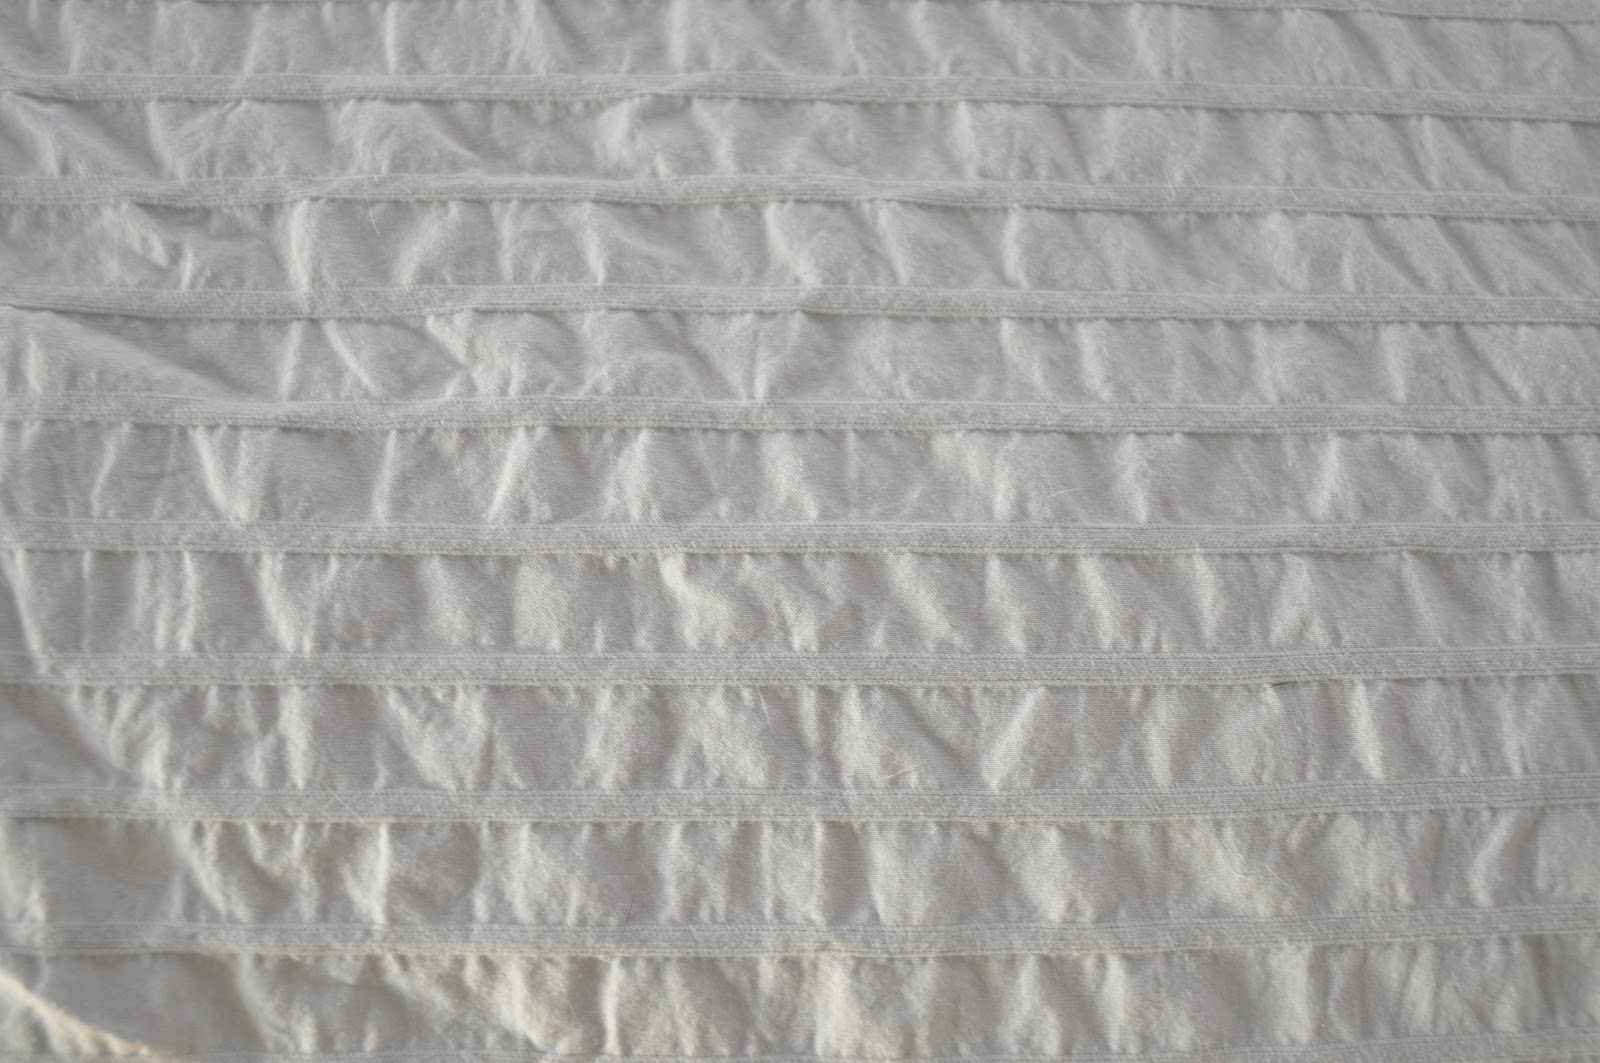 white bed sheet texture. Embracing Wrinkled Sheets! White Bed Sheet Texture